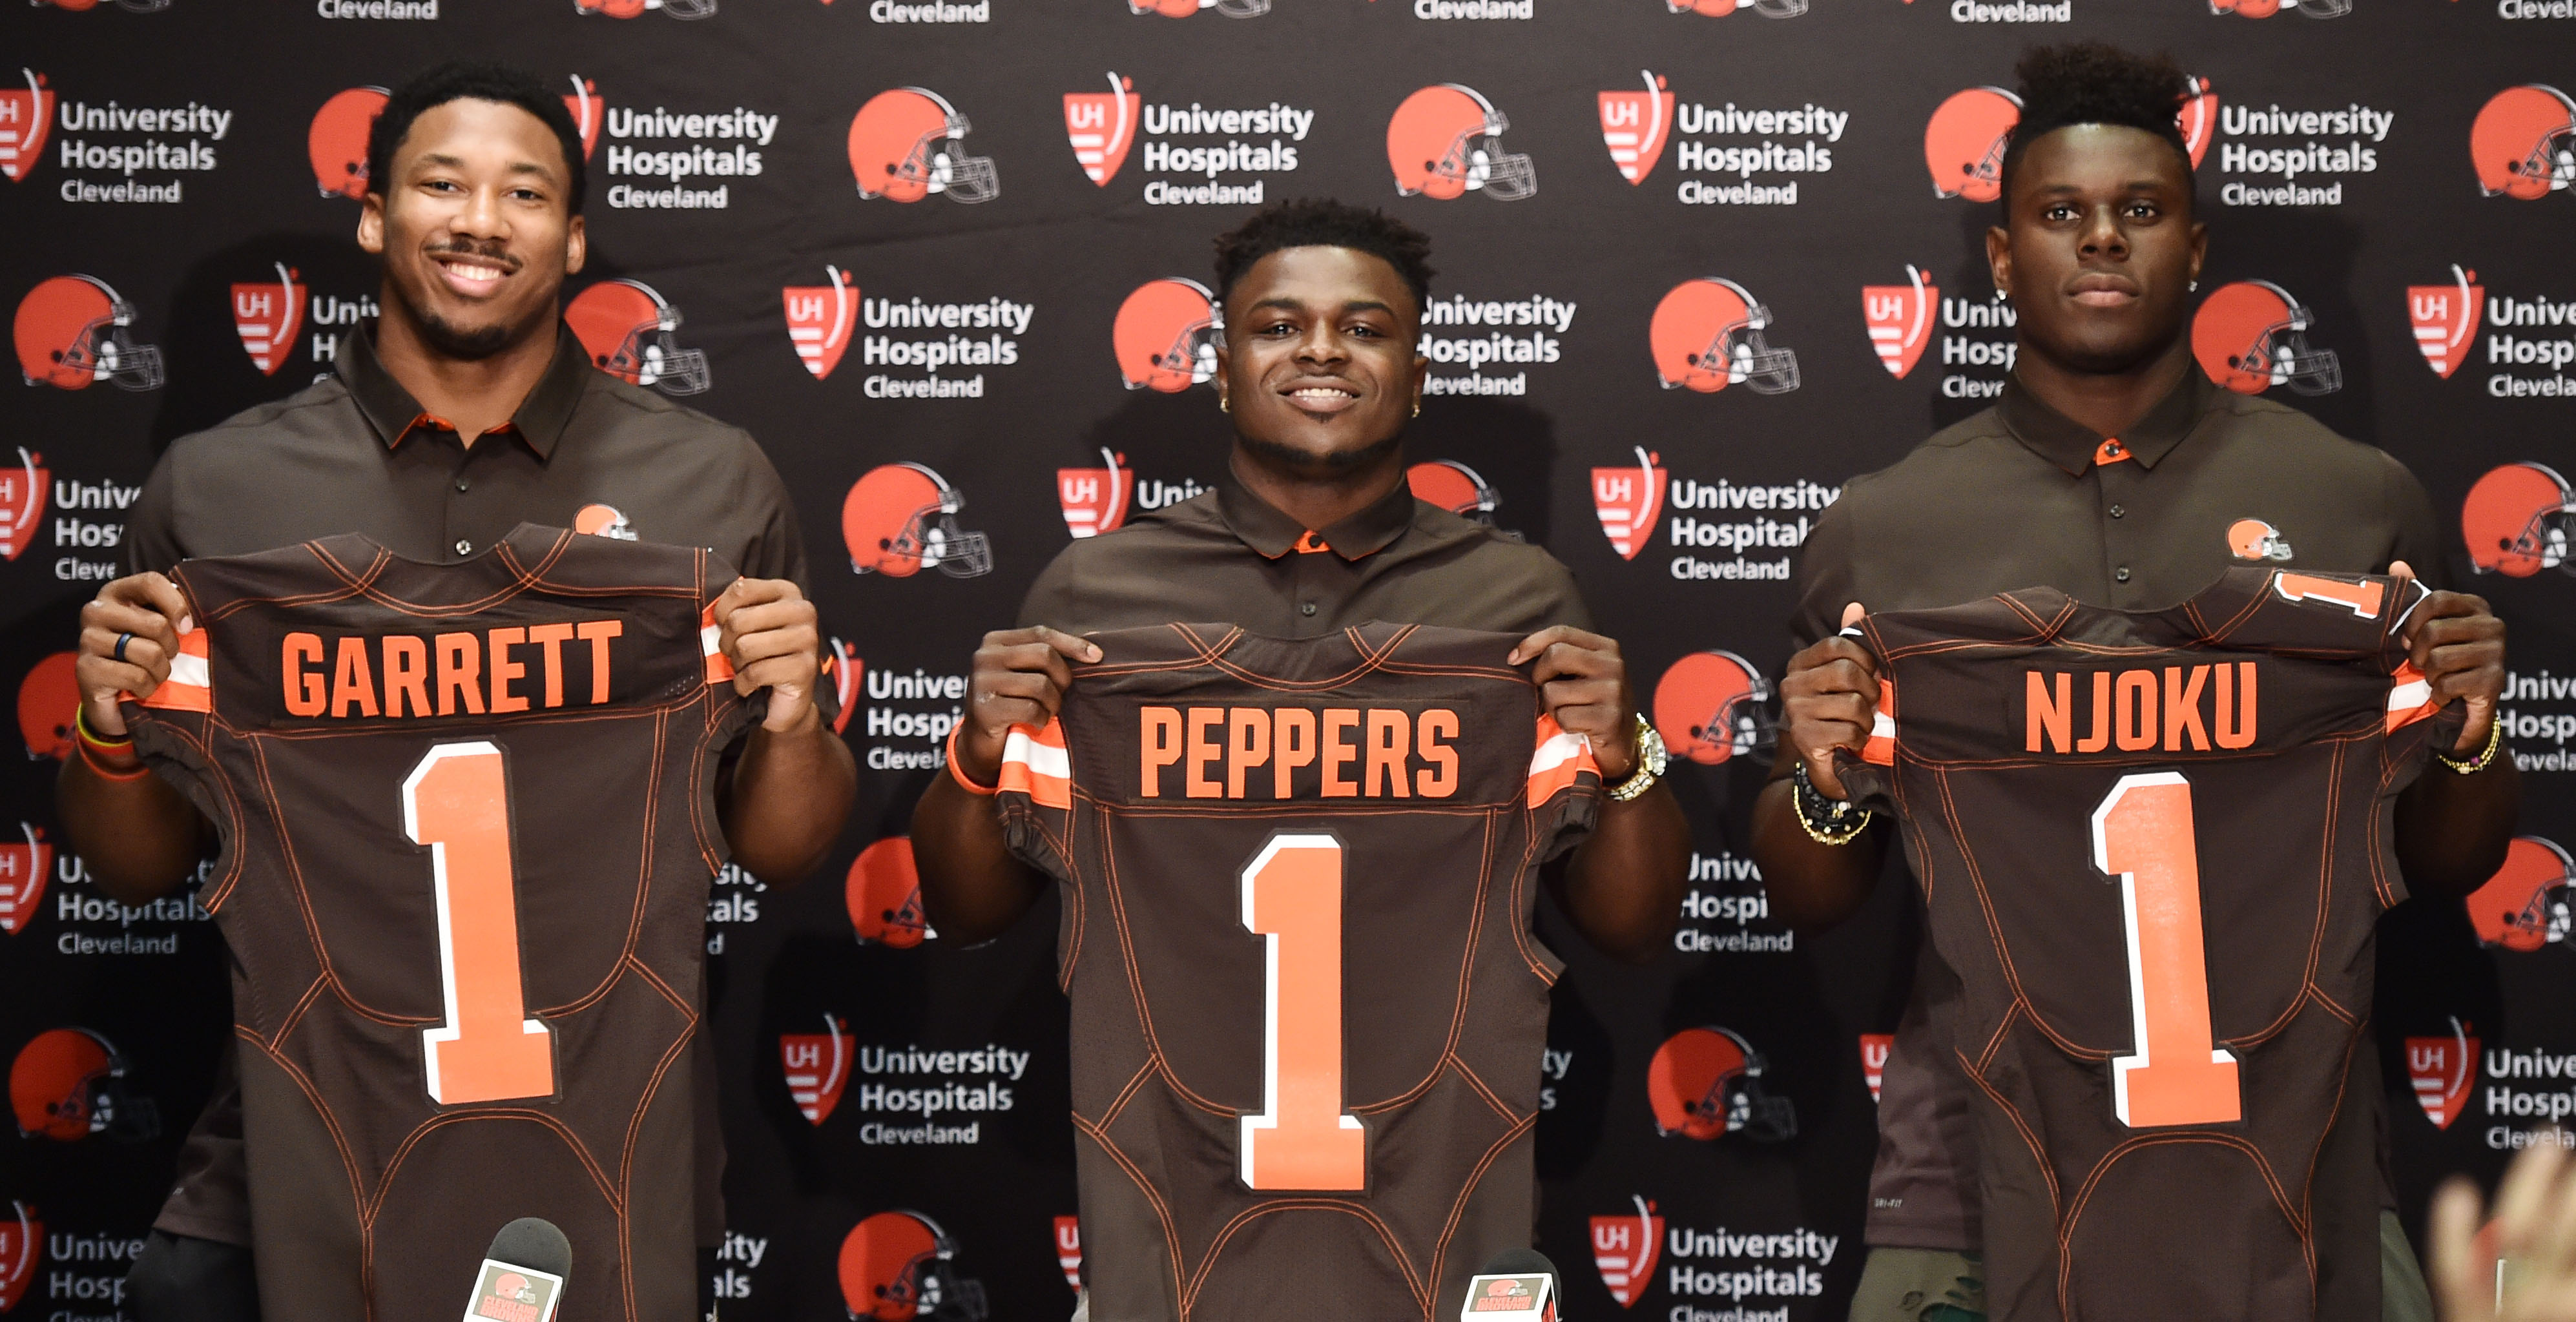 10034442-nfl-cleveland-browns-press-conference-3